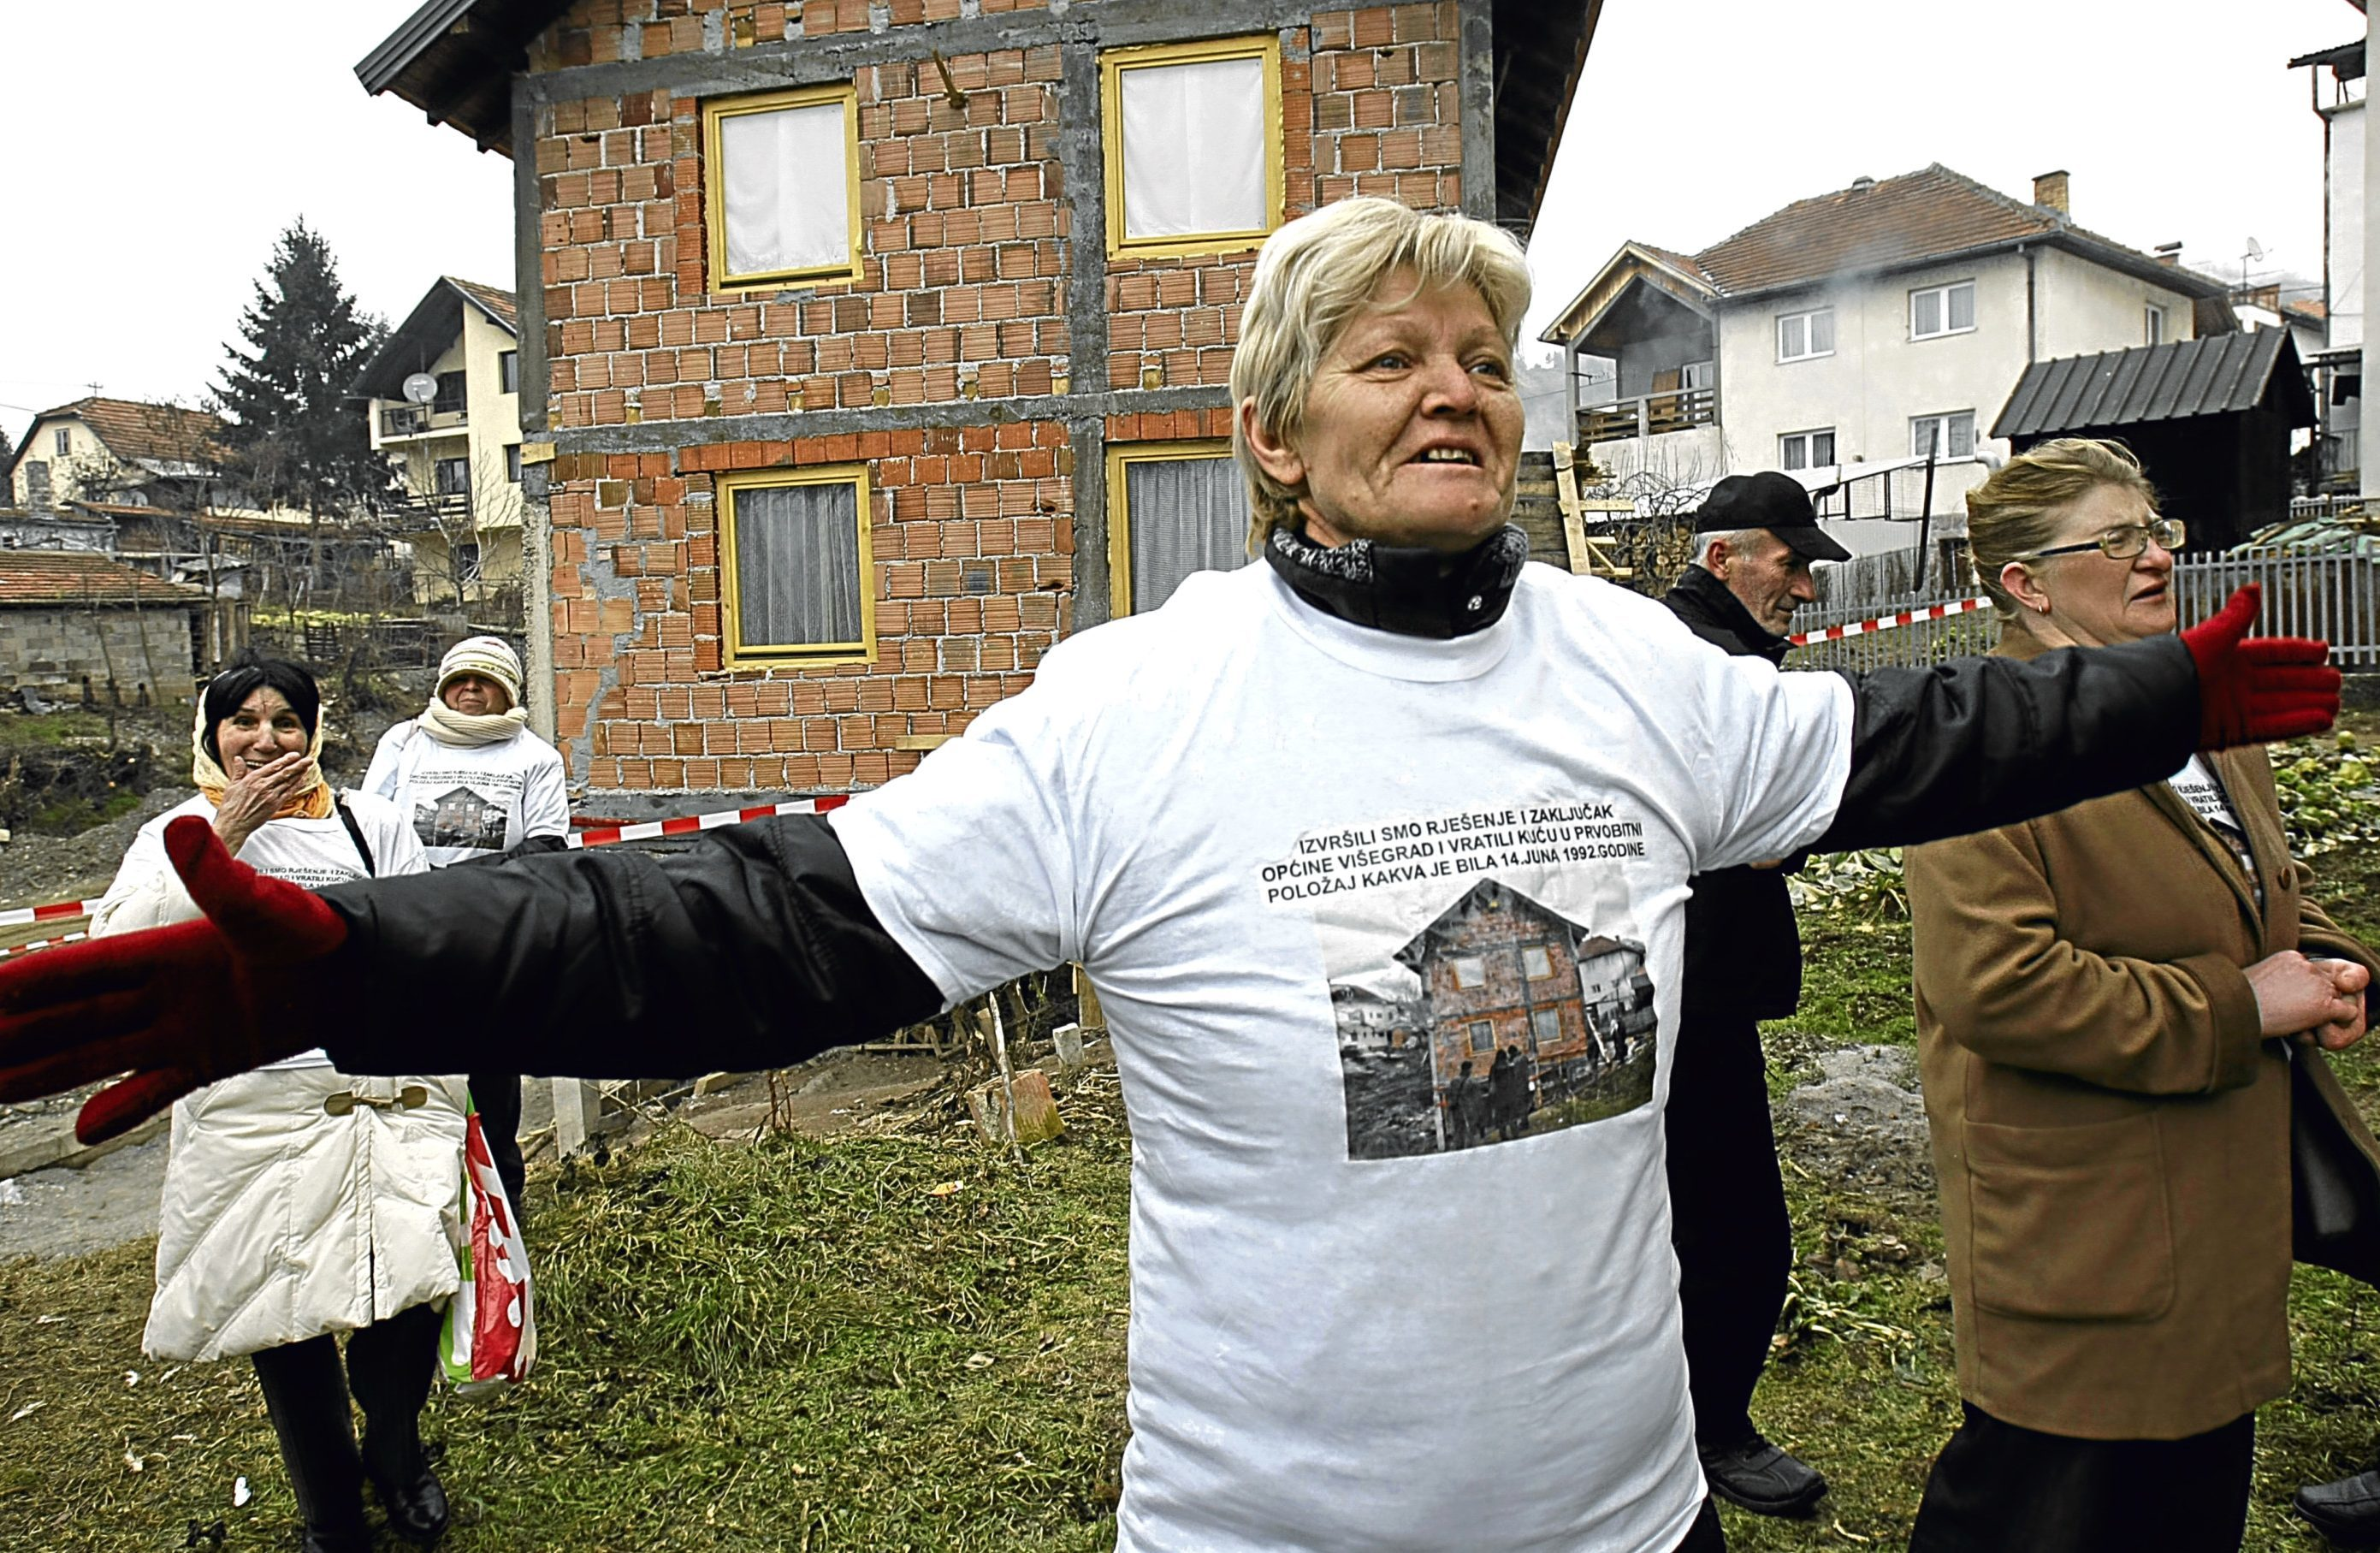 Bakira Hasecic campaigns against destruction of home in Visegrad, where more than 50 Muslims were killed in 1992 (Amel Emric/AP/REX/Shutterstock)